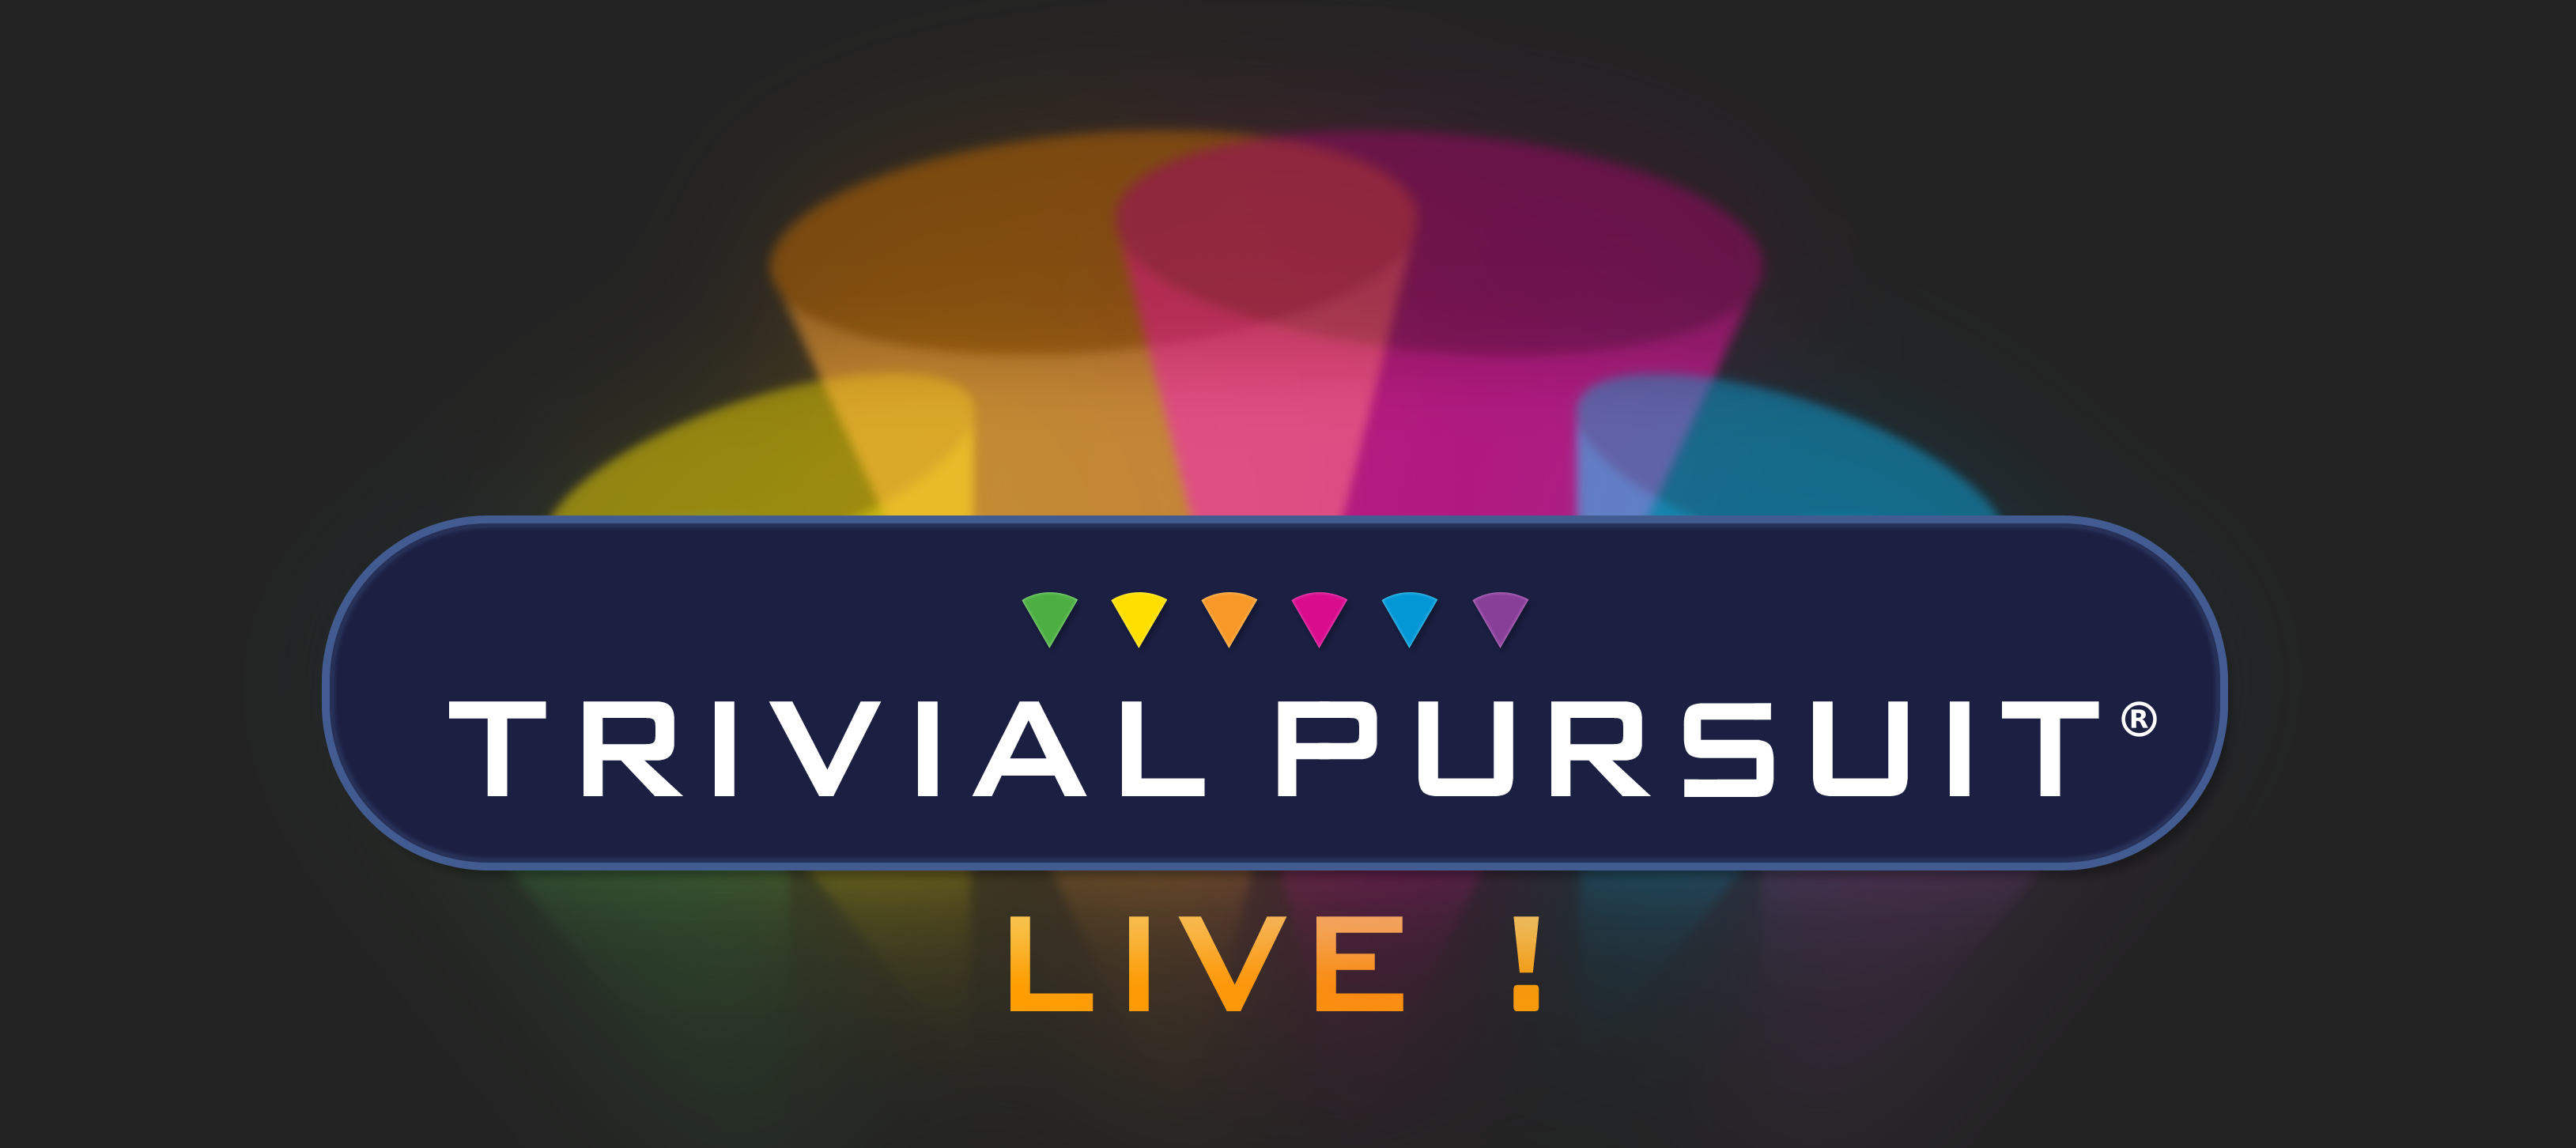 Trivial Pursuit Live! logo header